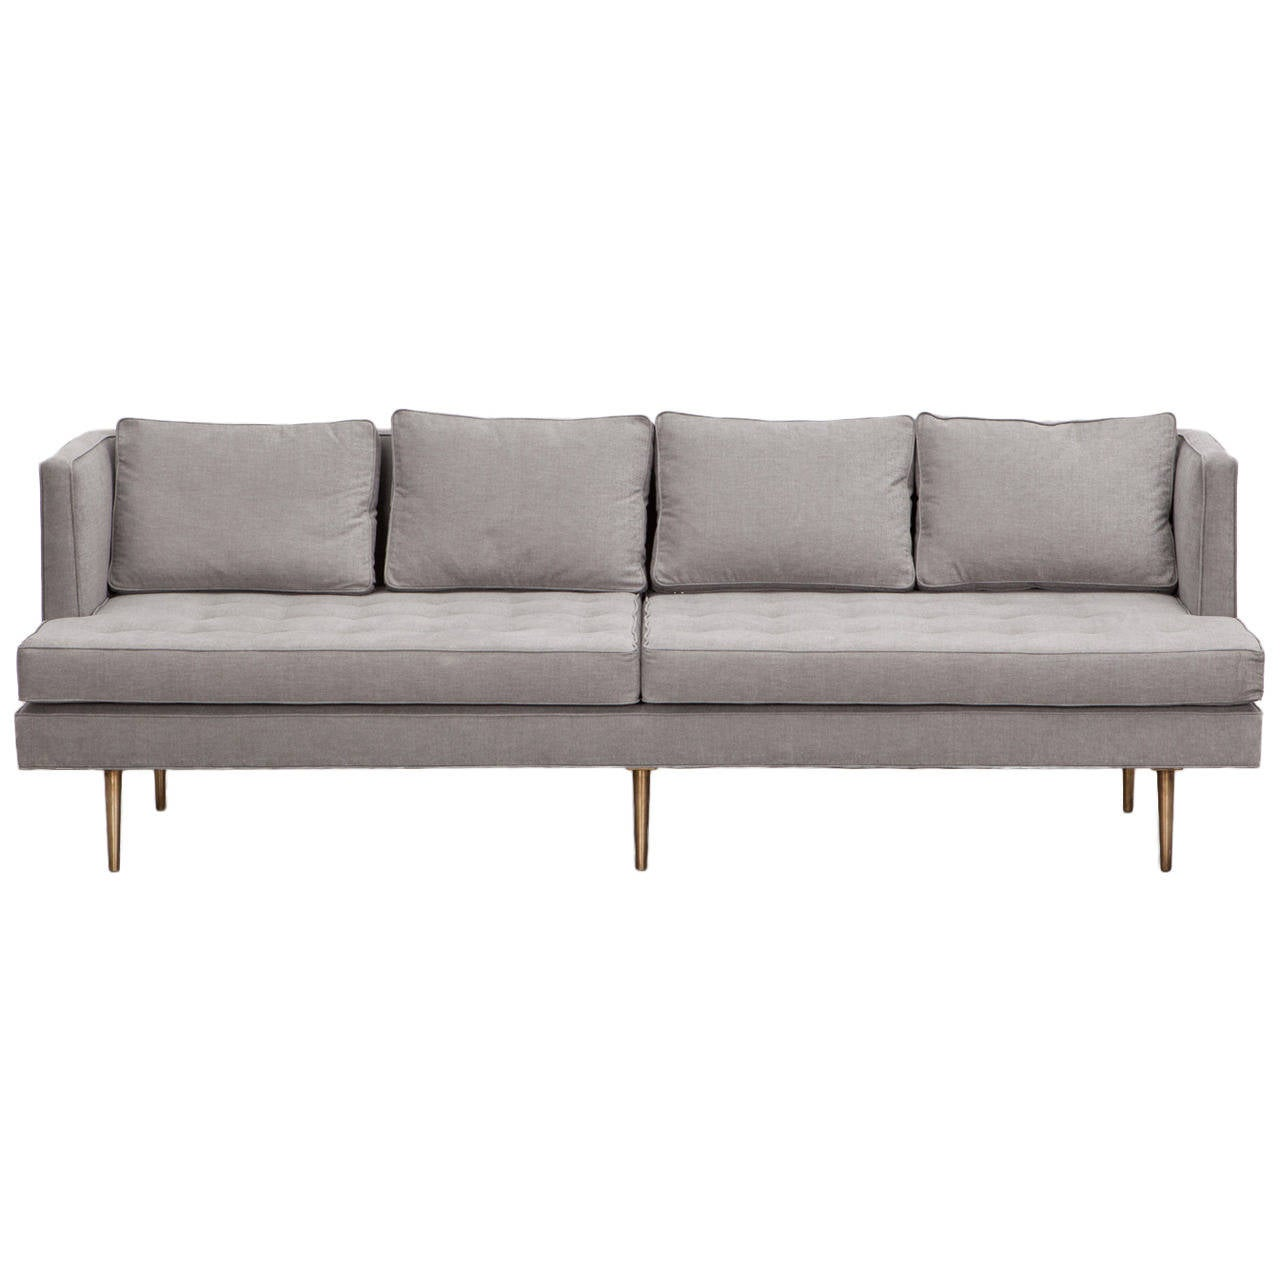 Edward Wormley Sofa at 1stdibs